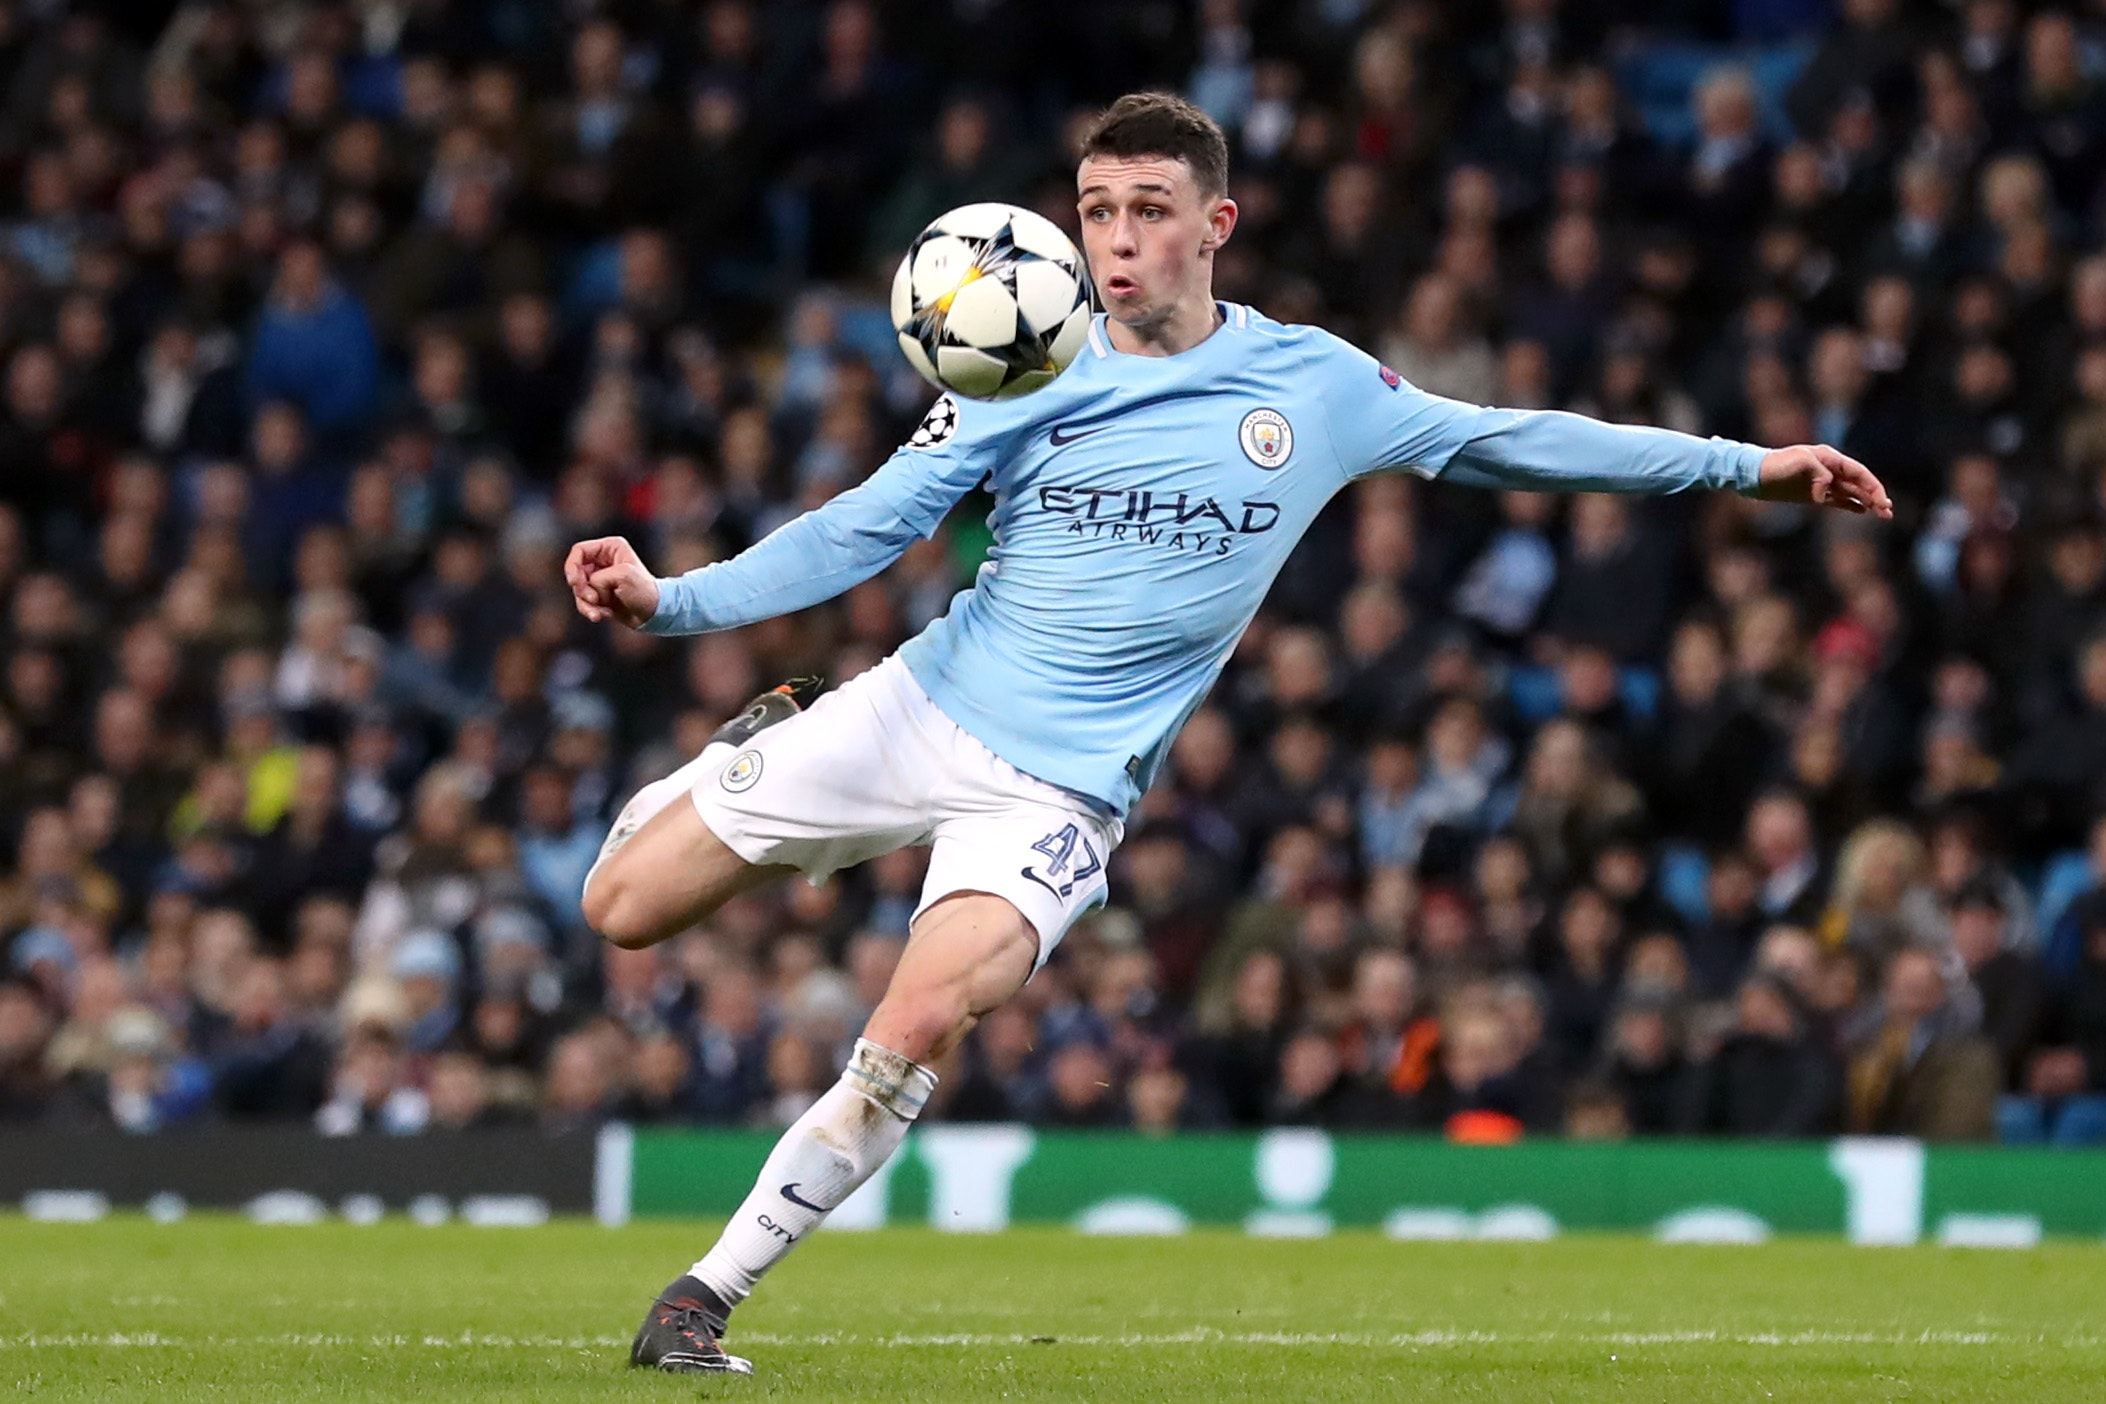 Watch a bare-chested Phil Foden show his skills on the streets of Stockport